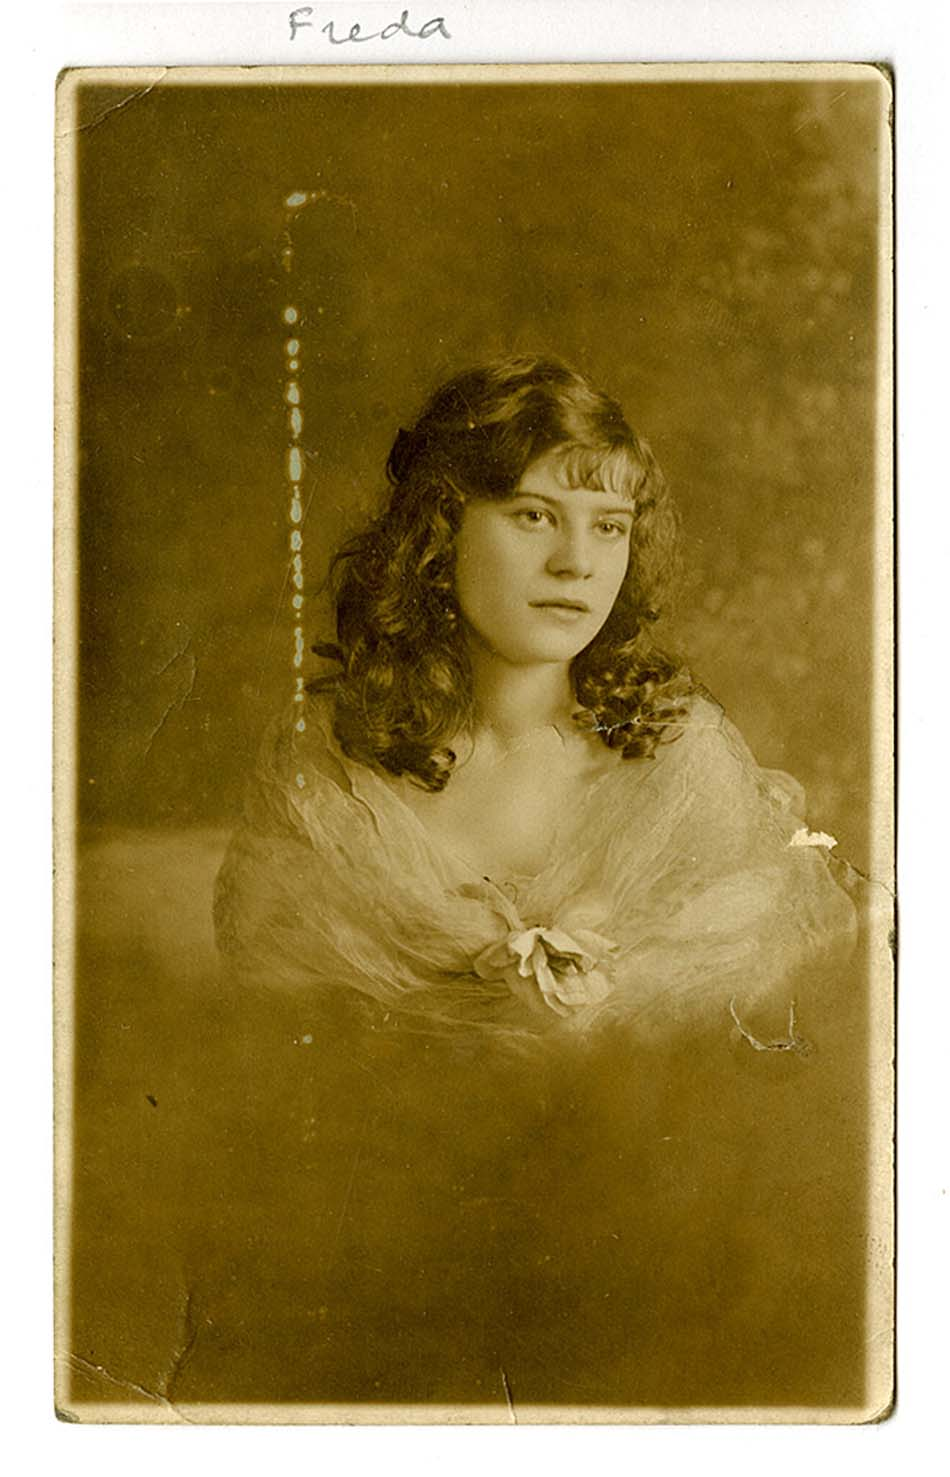 an old photograph of a young woman with curls and a taffeta shawl